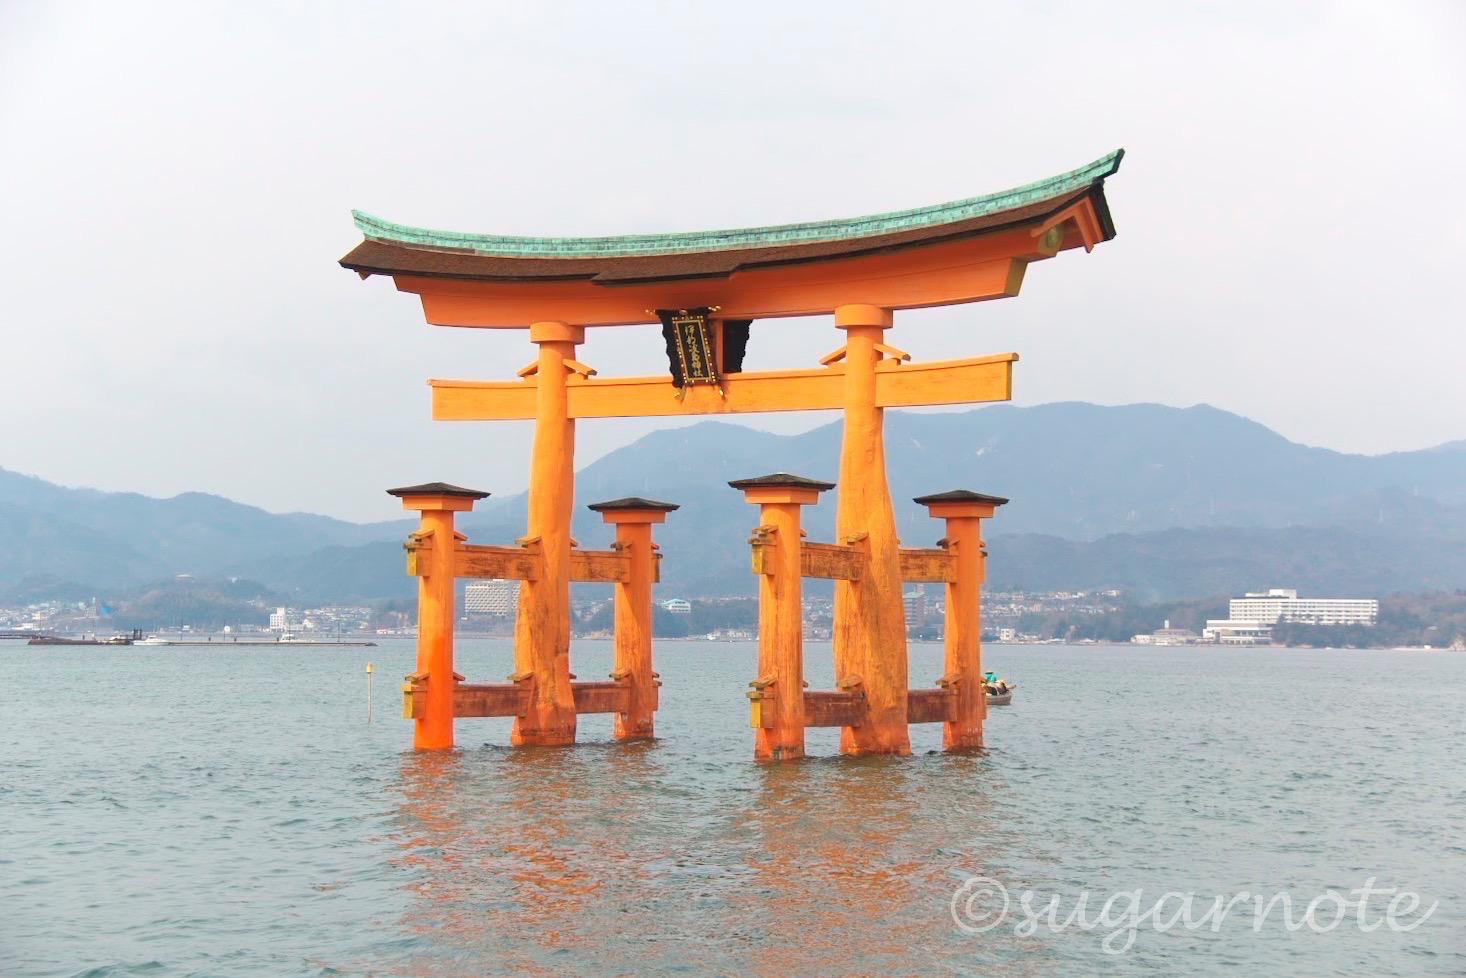 厳島神社, Itsukushima Shrine